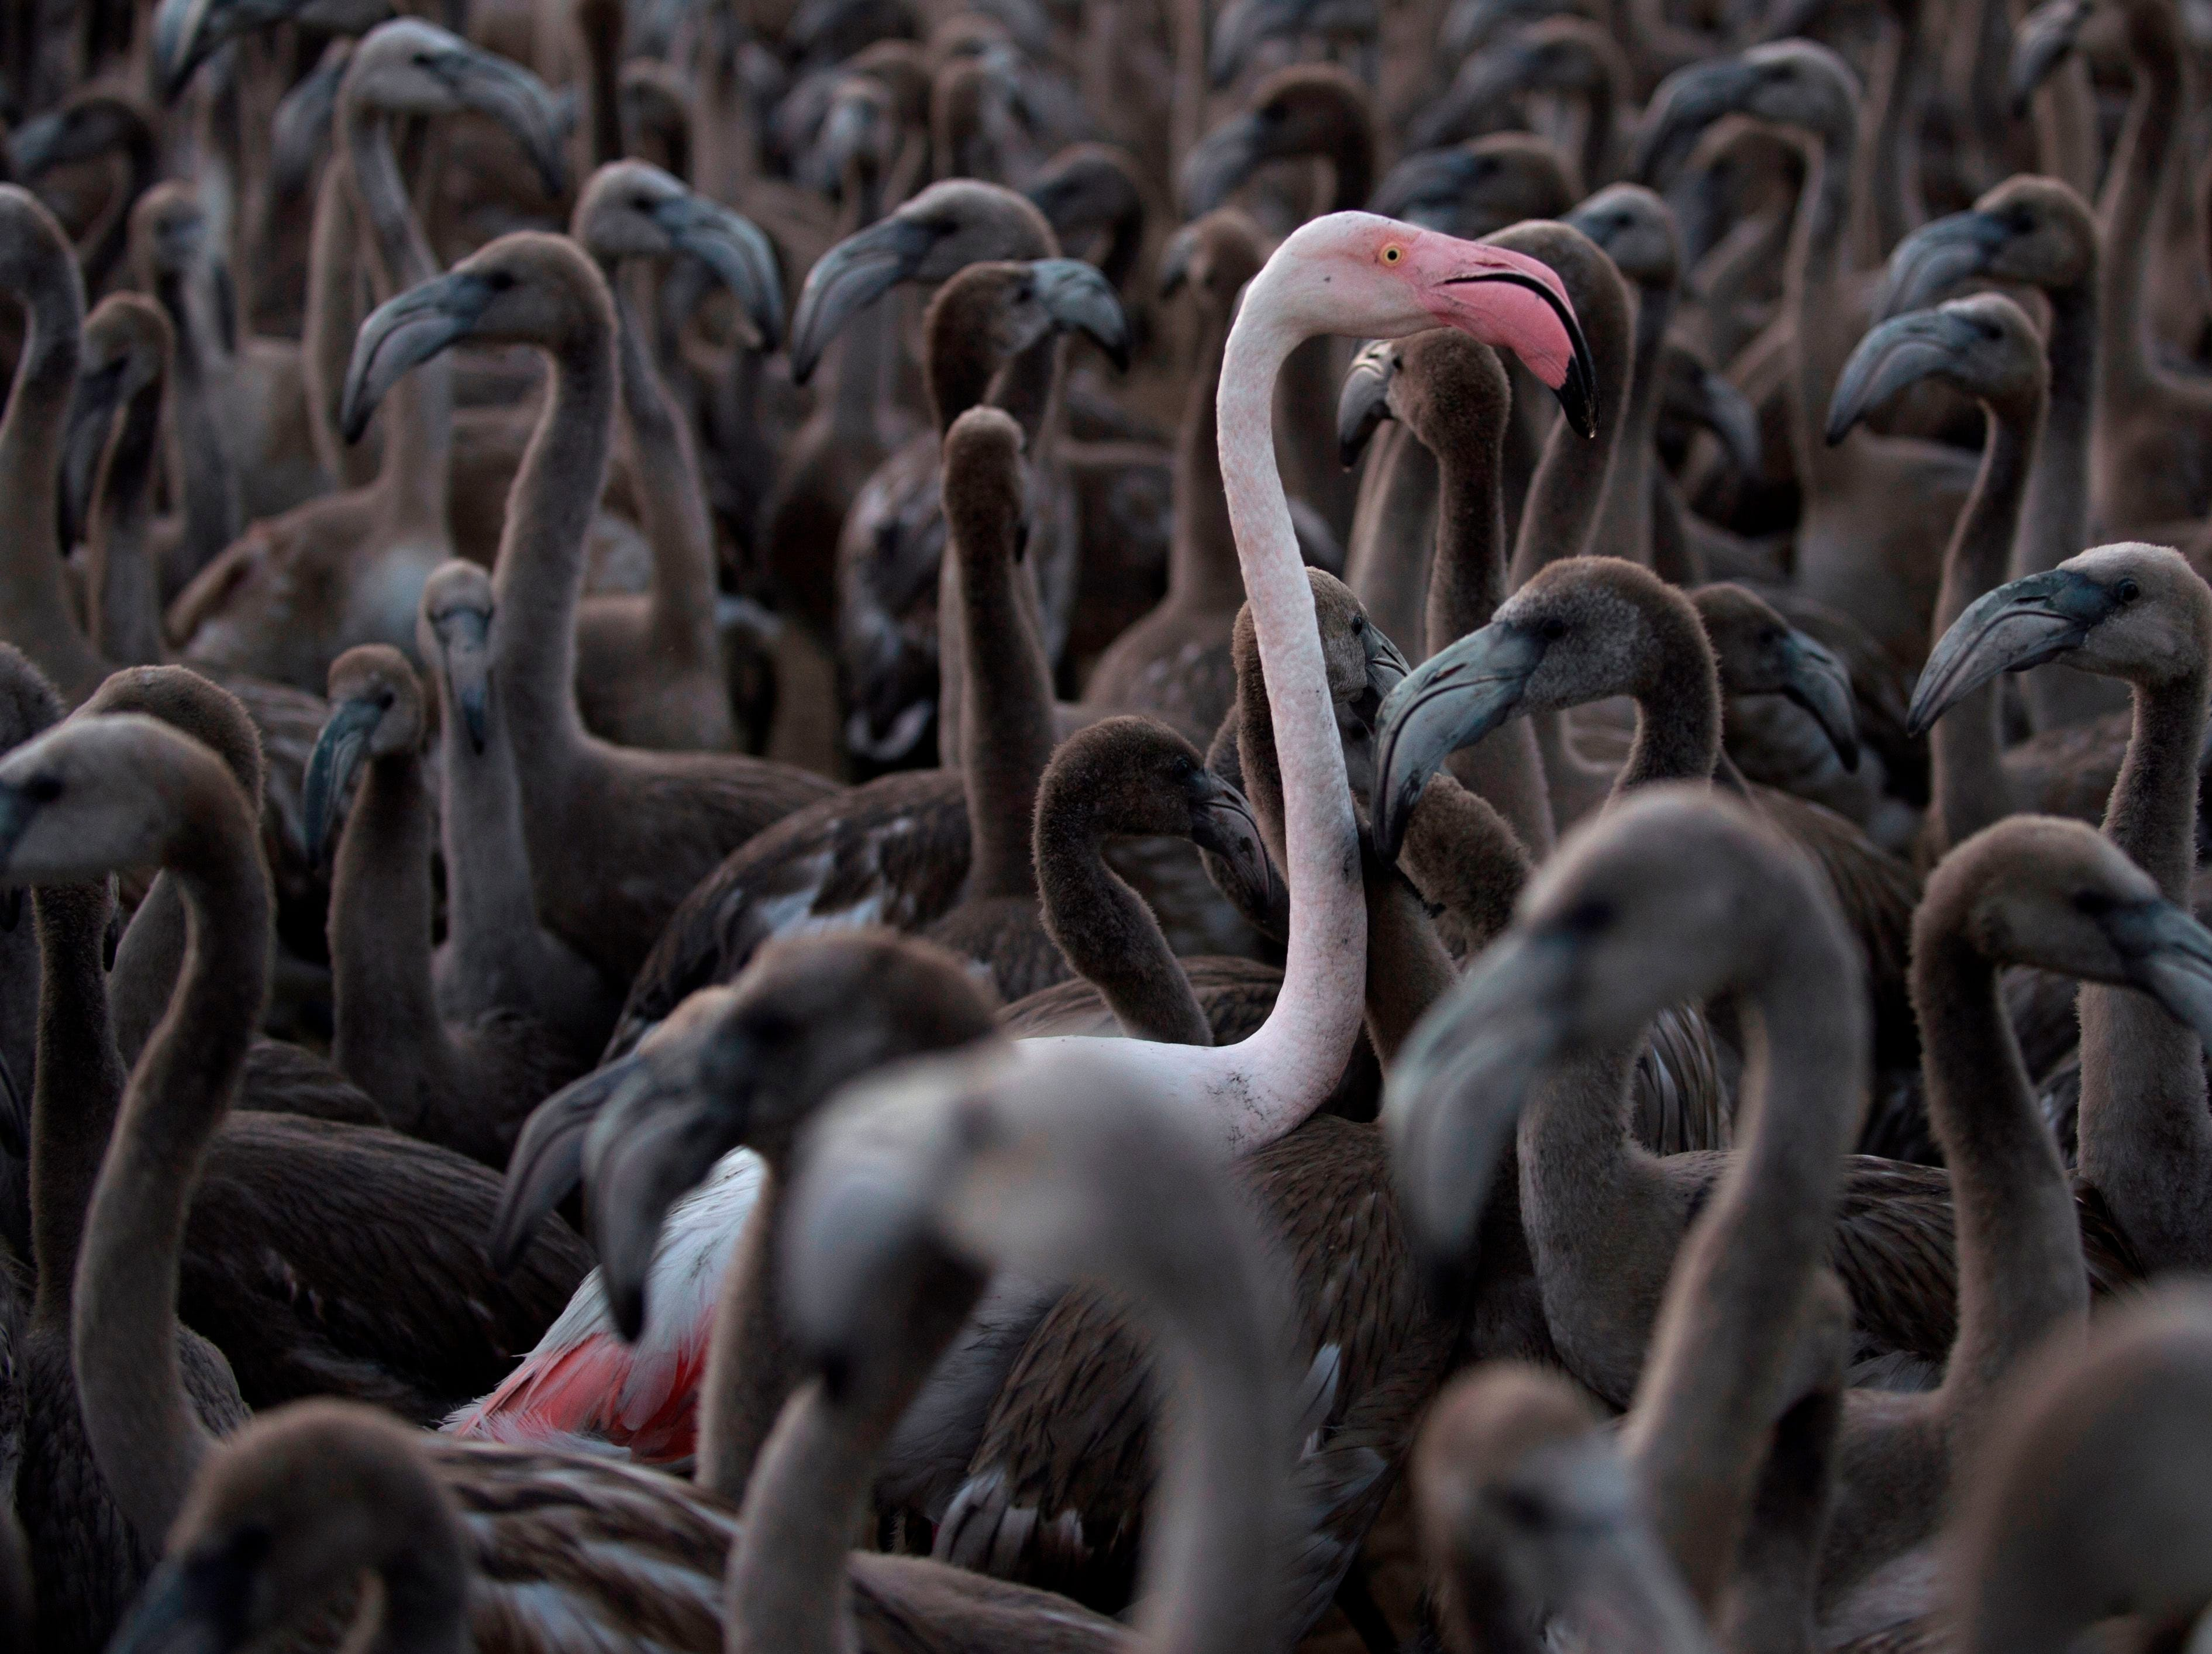 Aug. 11, 2018: Flamingos move around a pen at Fuente de Piedra lake in Spain  during a tagging and control operation of flamingo chicks to monitor the evolution of the species.  The lake, which is the most important breeding ground for flamingos in the Iberian Peninsula, is also a nature reserve and a haven for birds with over 170 different species recorded.